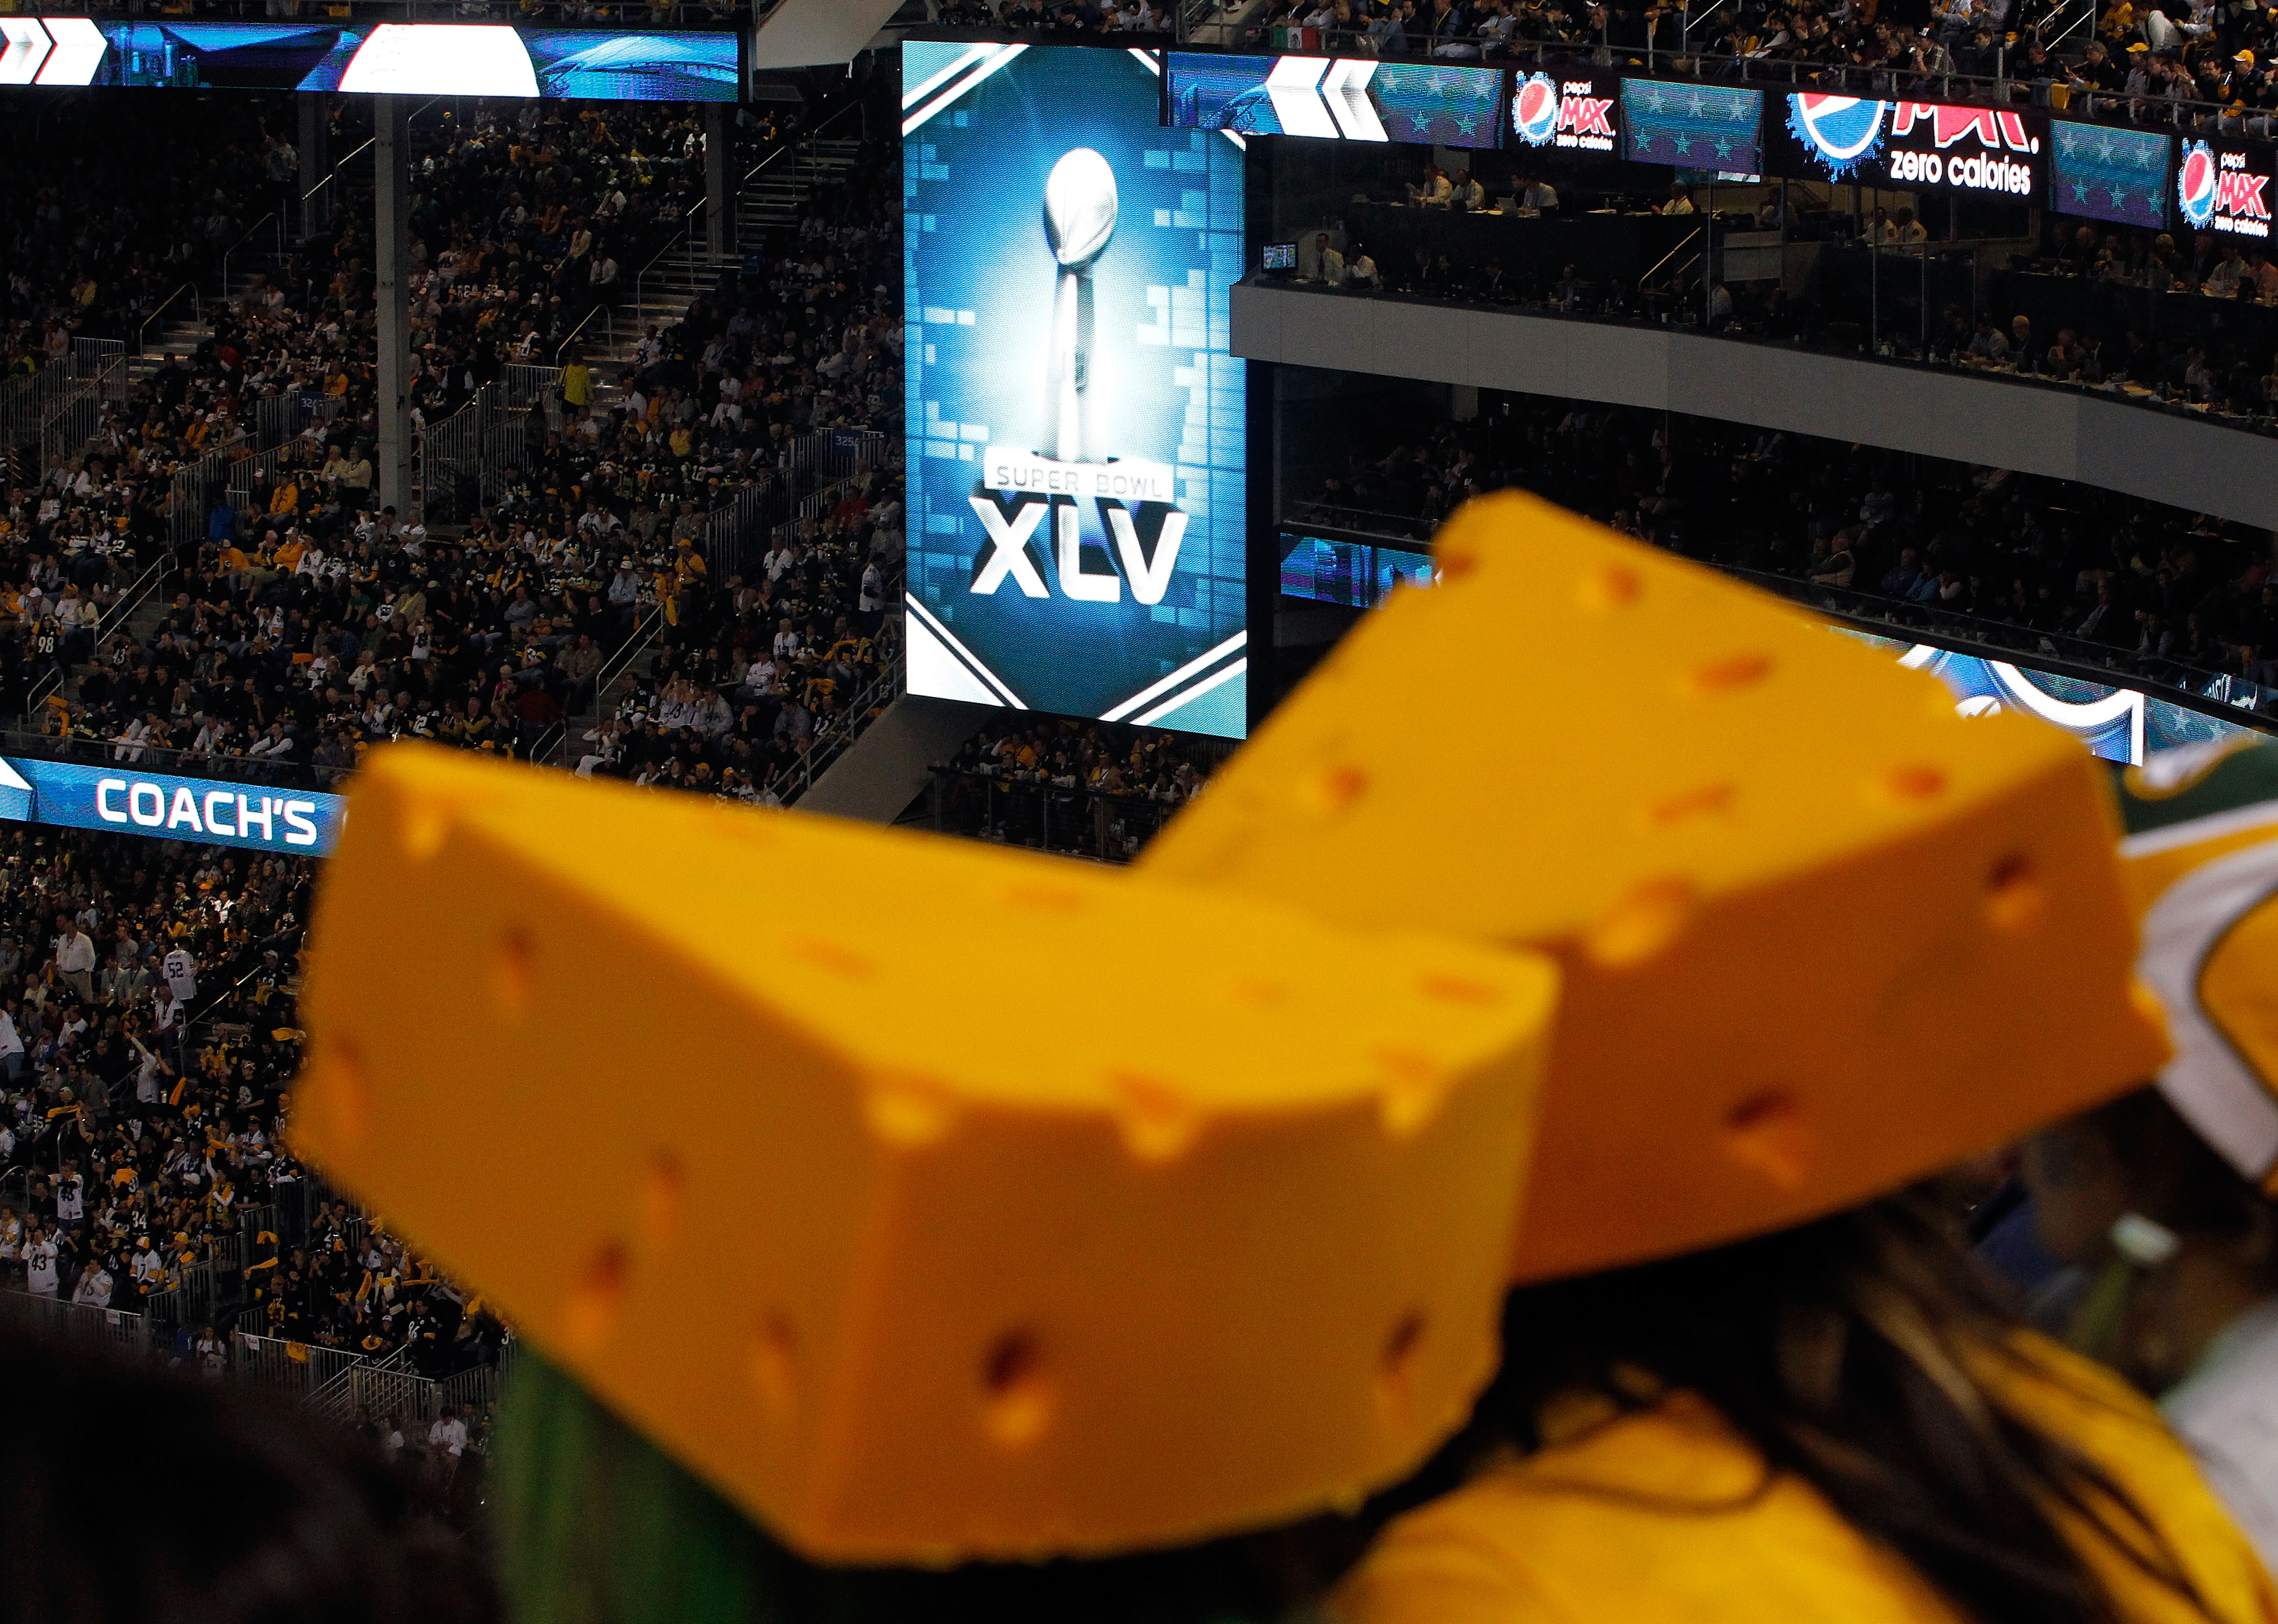 ARLINGTON, TX - FEBRUARY 06:  A general view of two cheeseheads worn by Green Bay Packers fans as the Packers take on the Pittsburgh Steelers during Super Bowl XLV at Cowboys Stadium on February 6, 2011 in Arlington, Texas.  (Photo by Tom Pennington/Getty